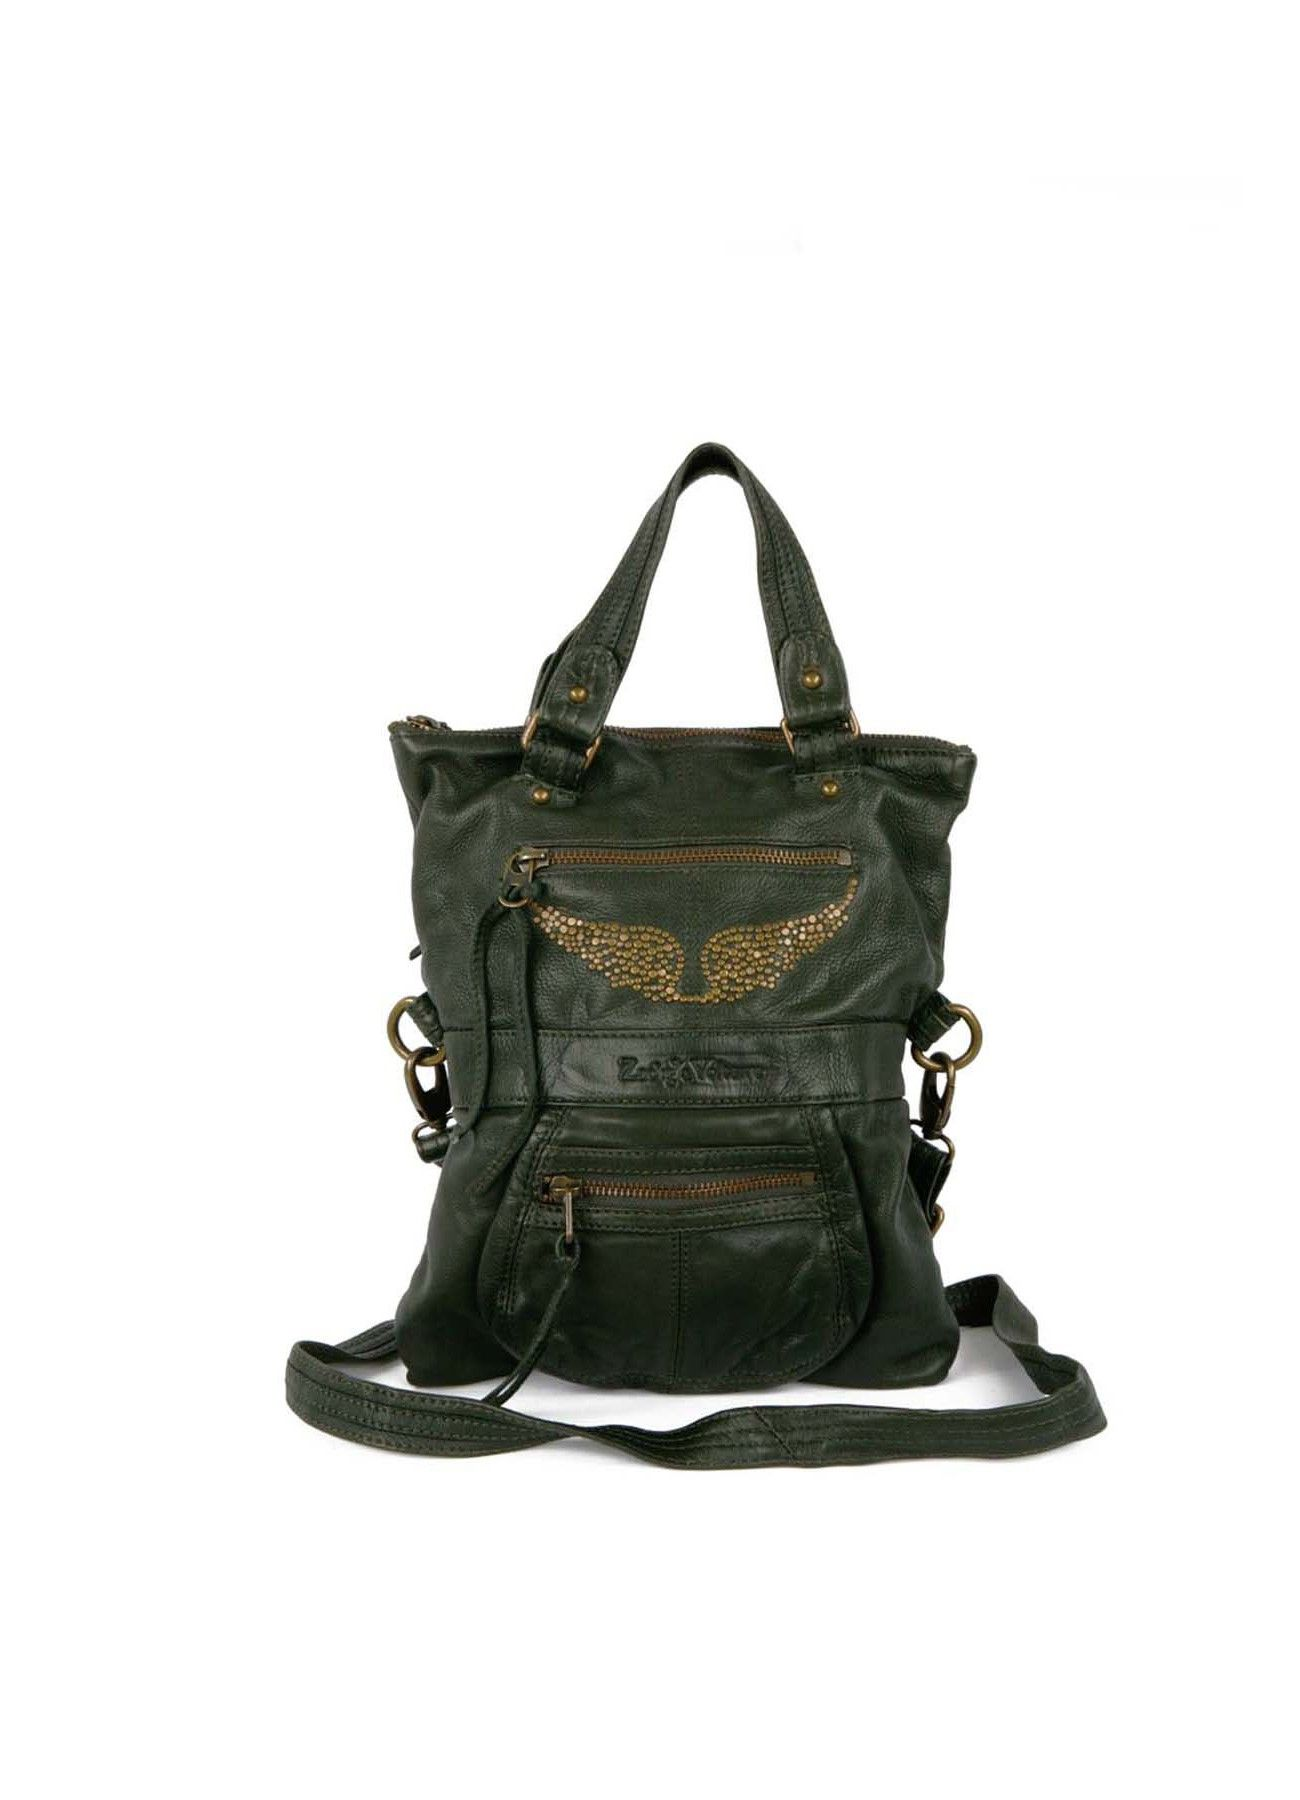 SMALL CABAS TOULY Zadig & Voltaire